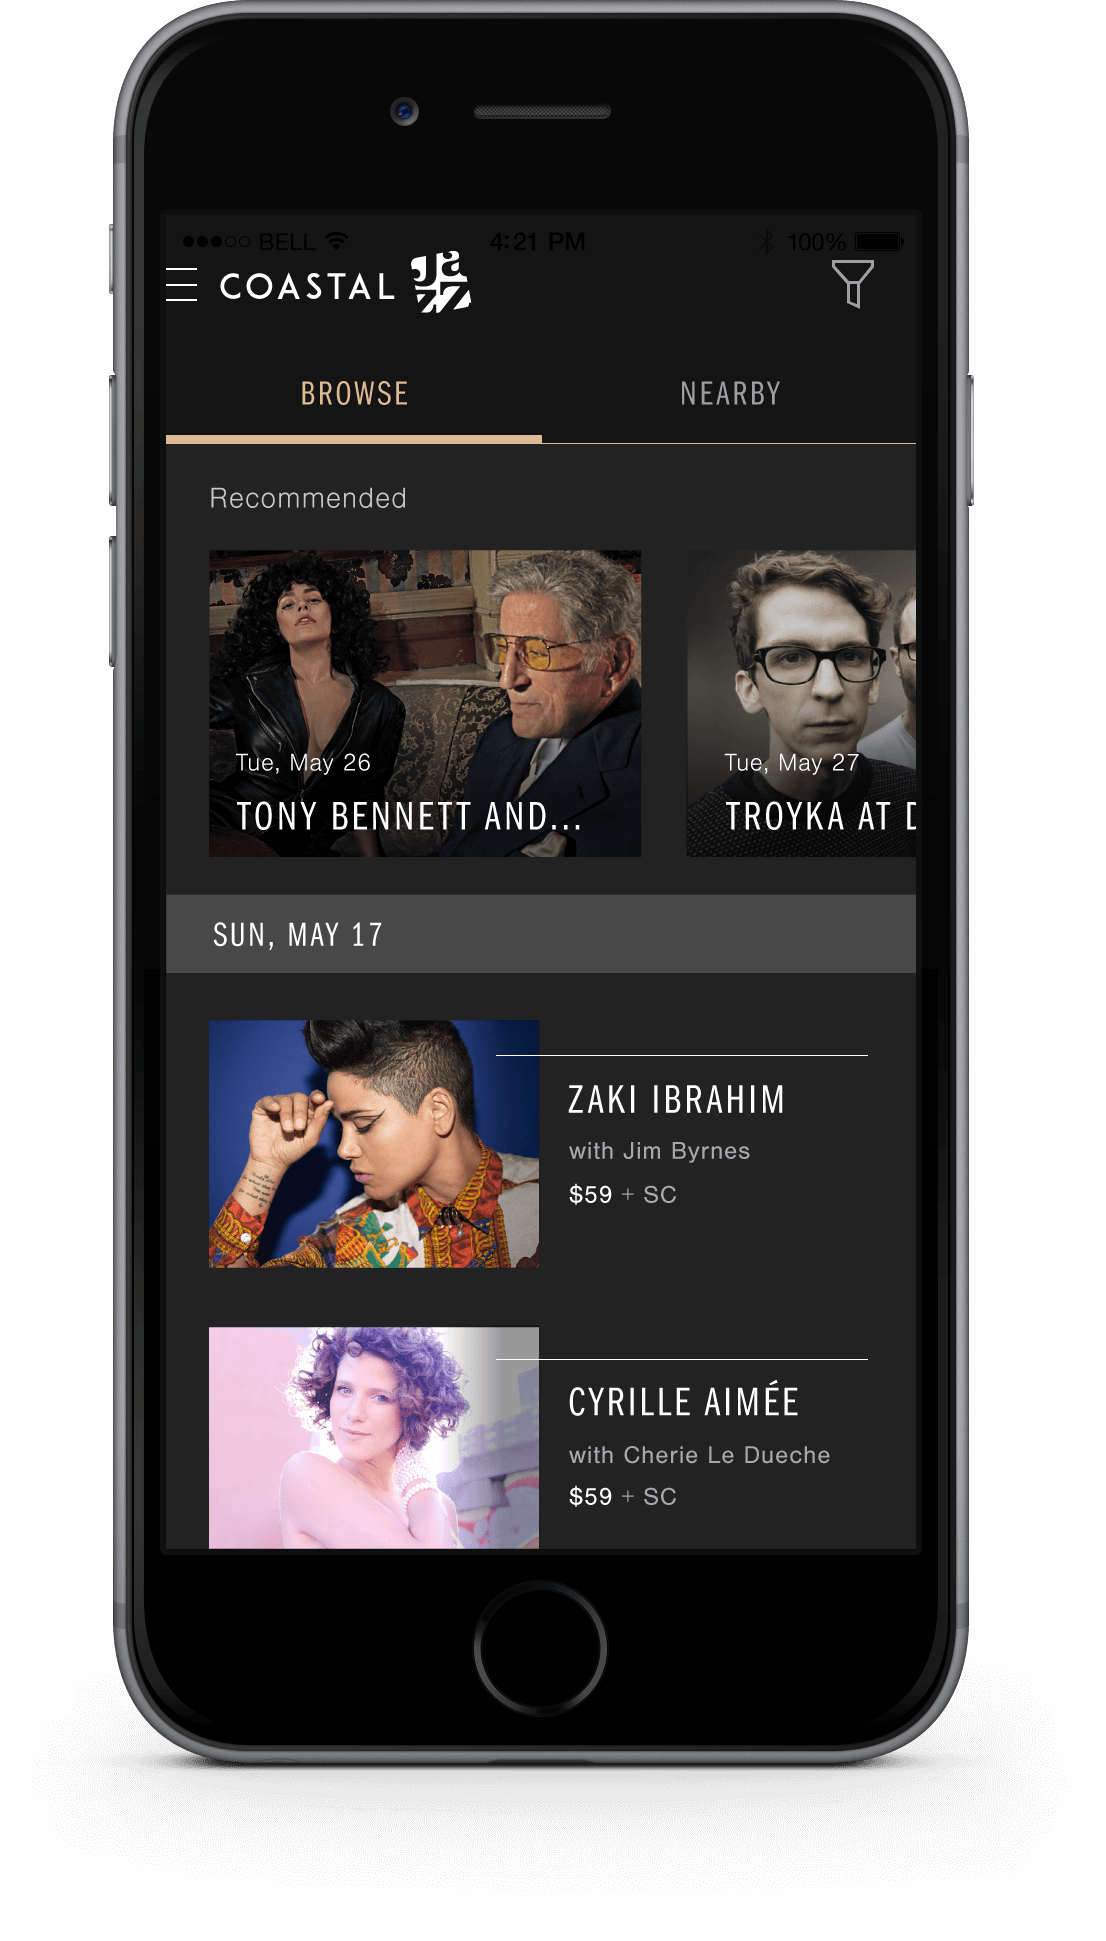 Coastal Jazz Mobile App